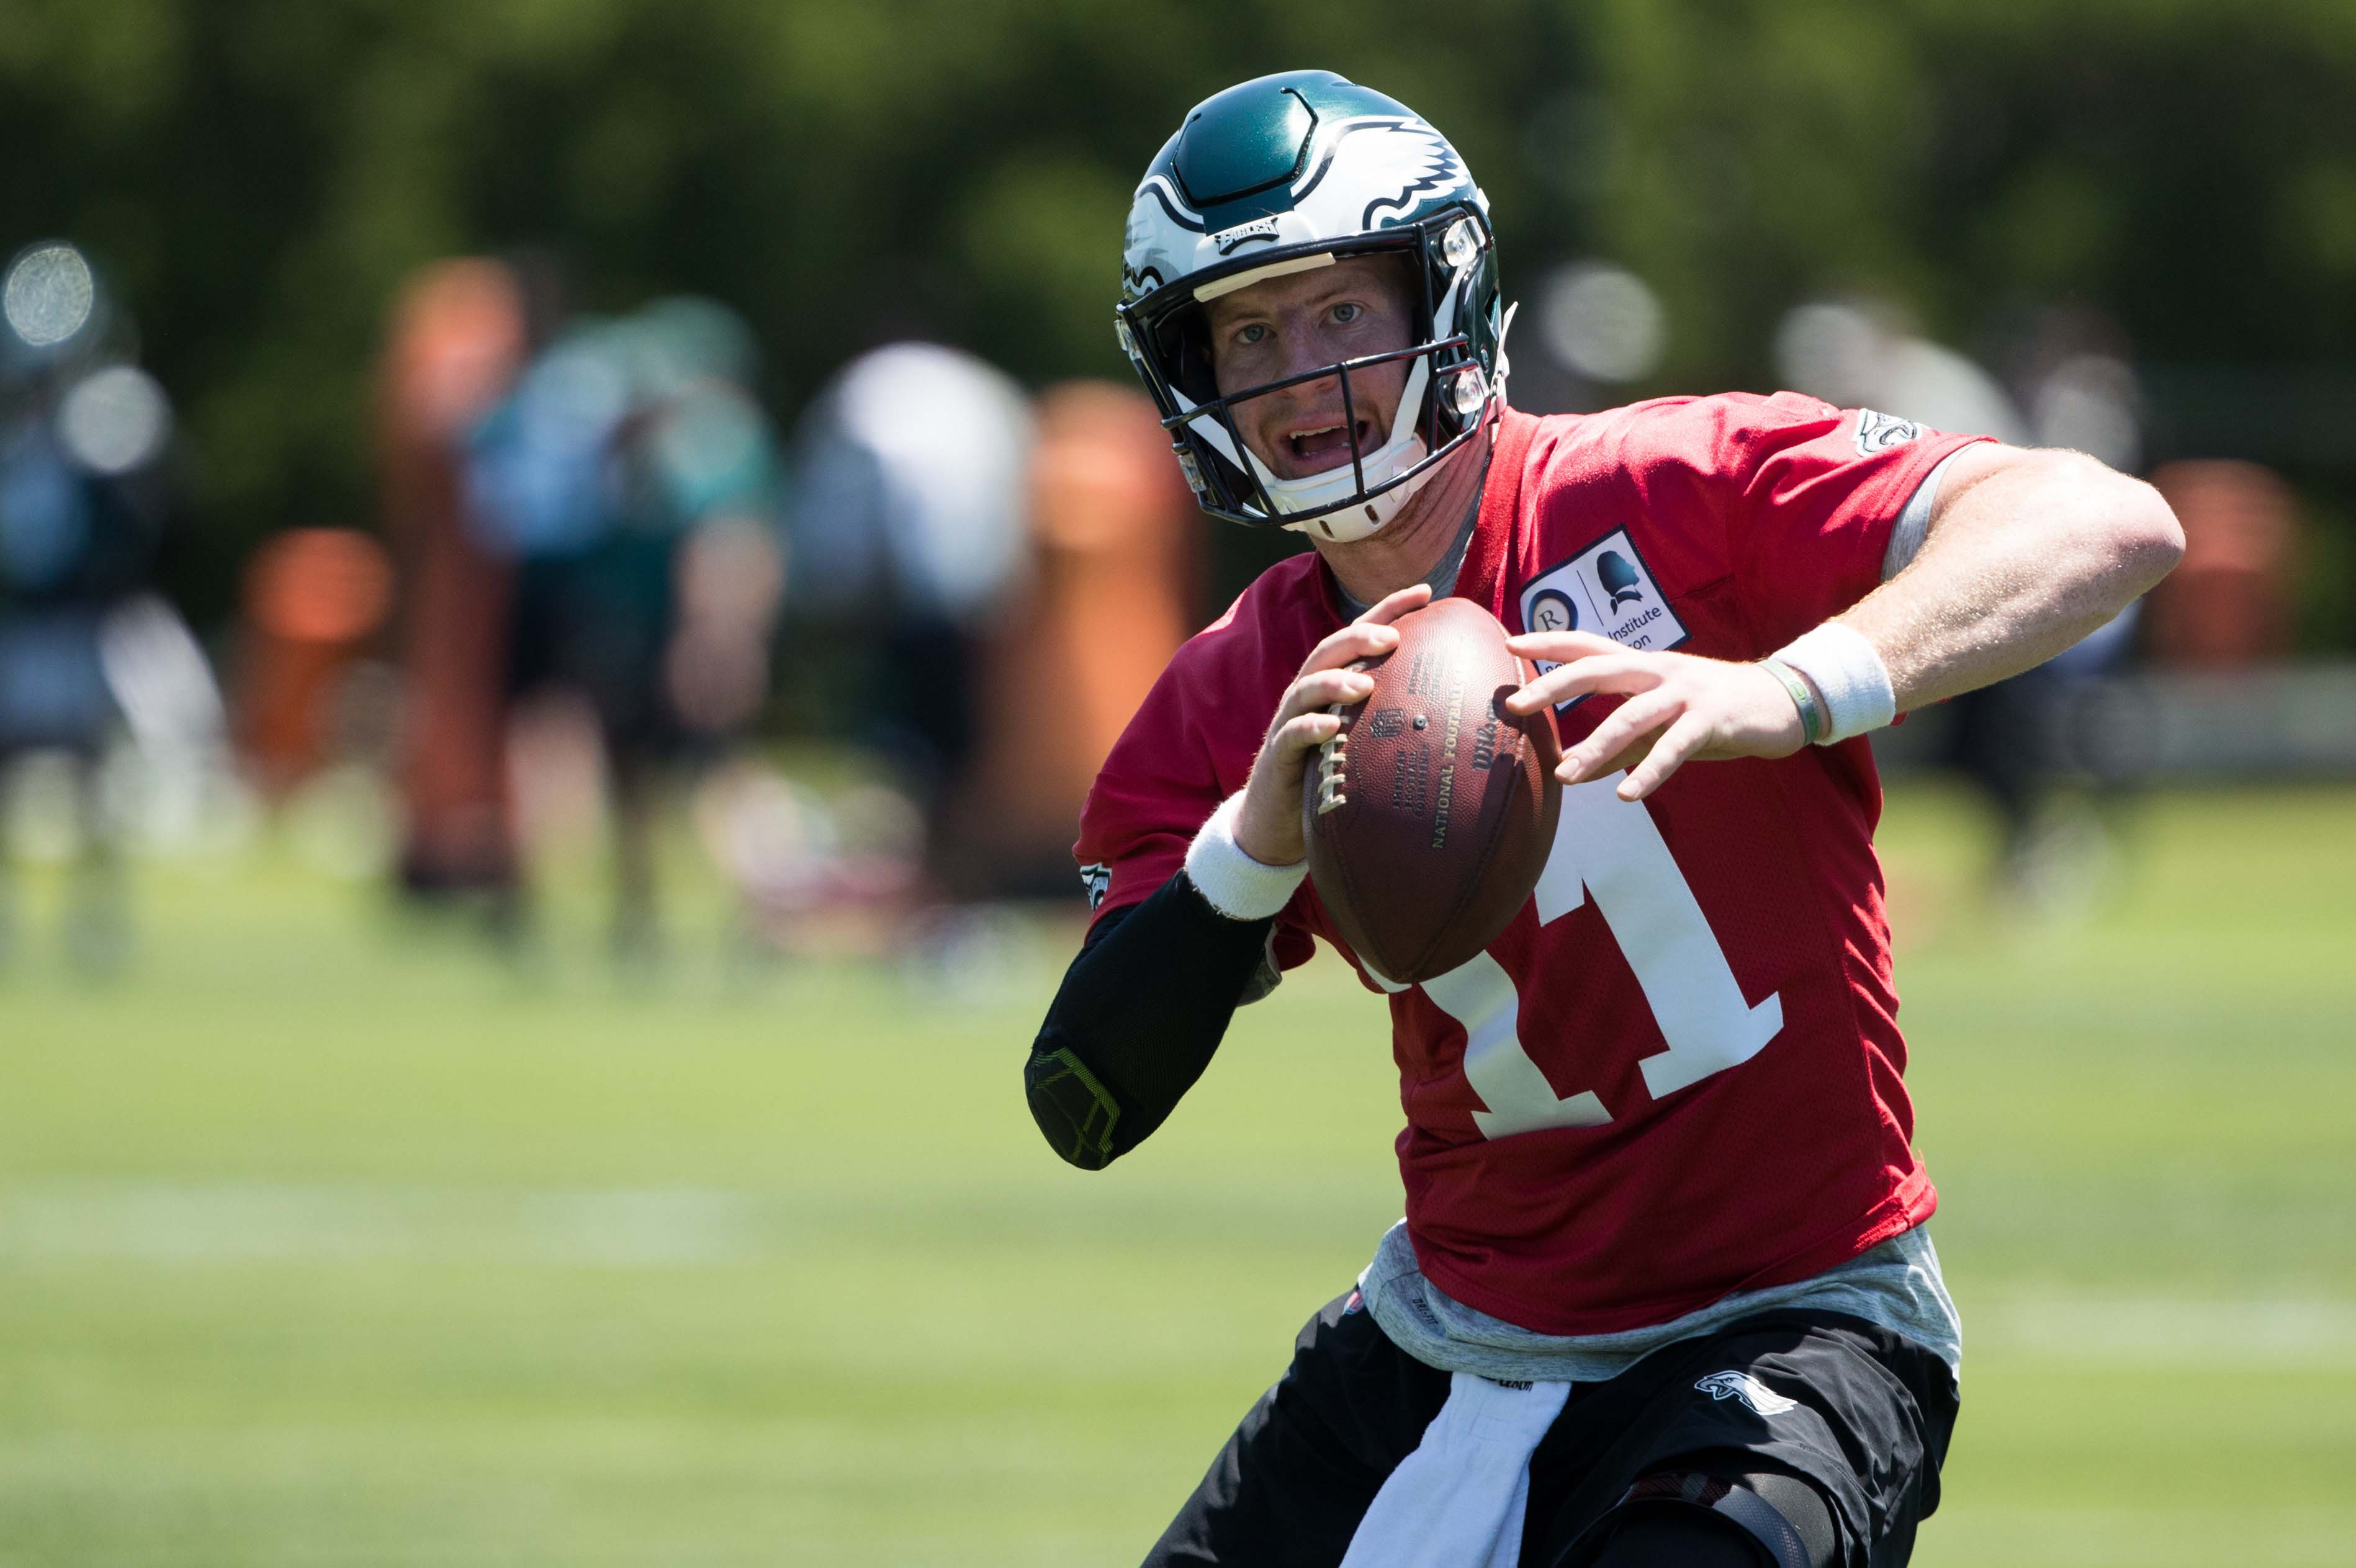 Eagles training camp questions: What can defending champs expect from Carson Wentz?